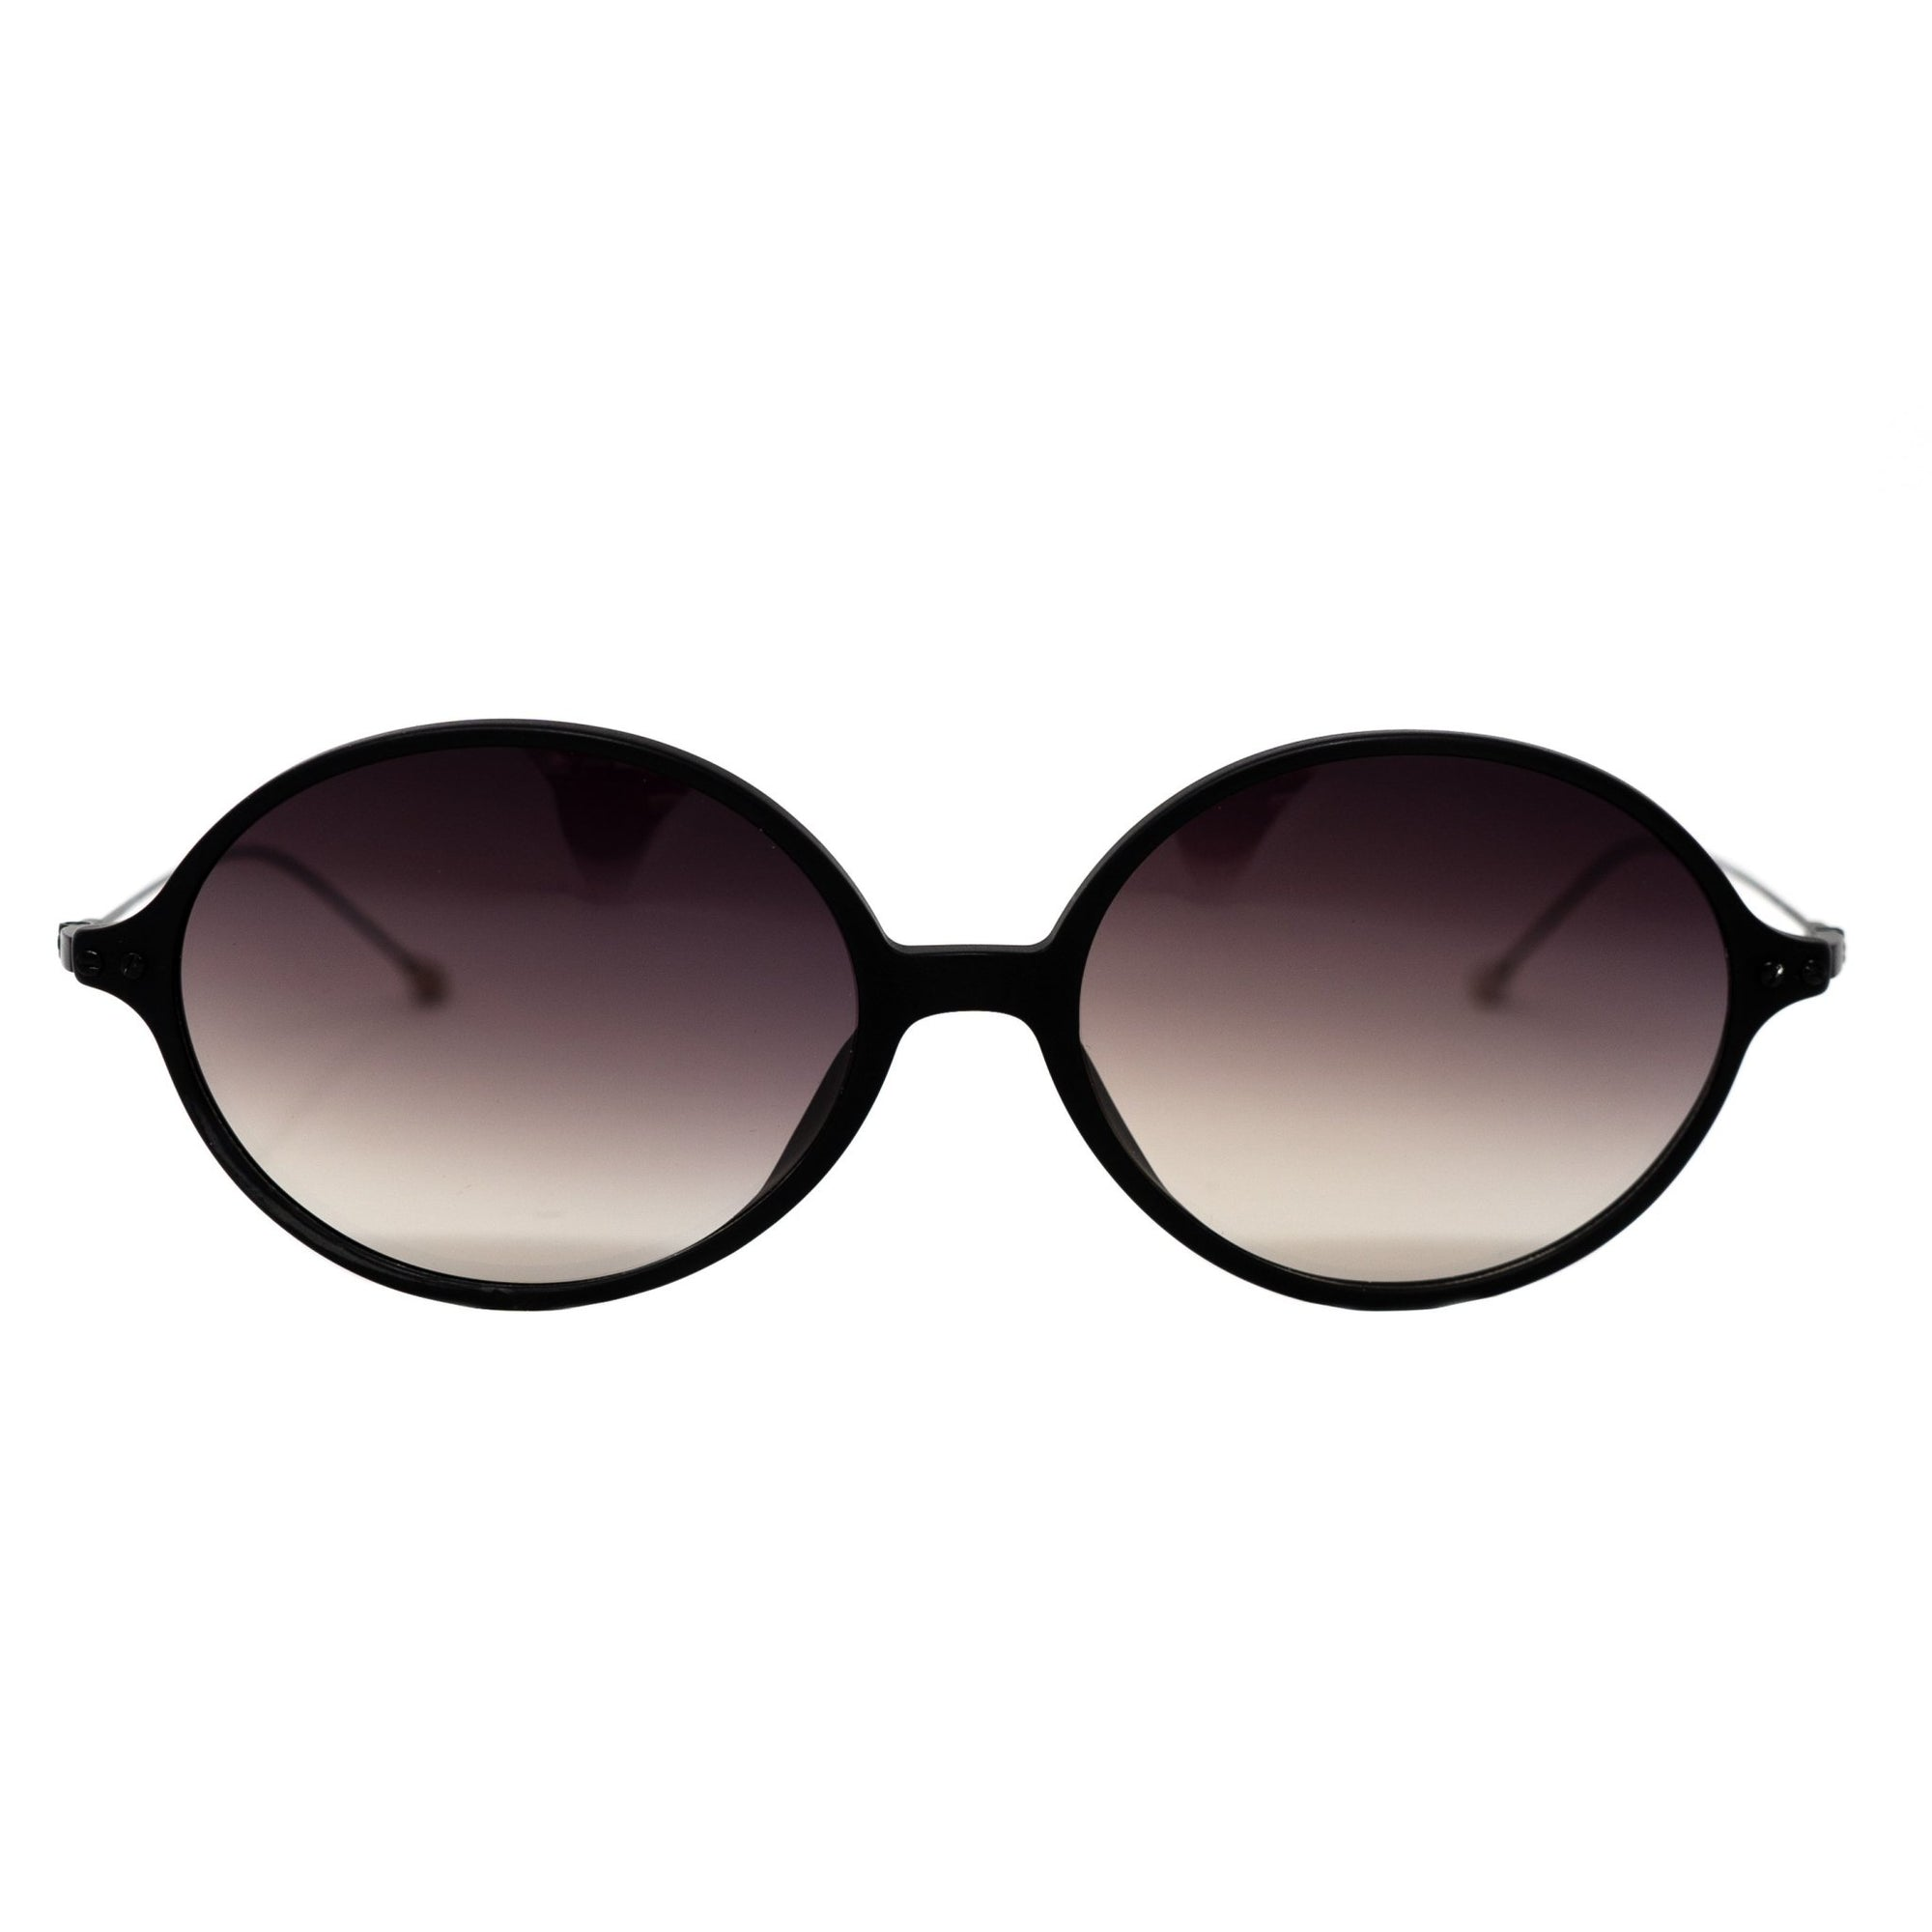 Ann Demeulemeester Unisex Sunglasses Oval Matte Black 925 Silver Titanium with Grey Graduated Lenses Category 3 AD64C3SUN - Watches & Crystals